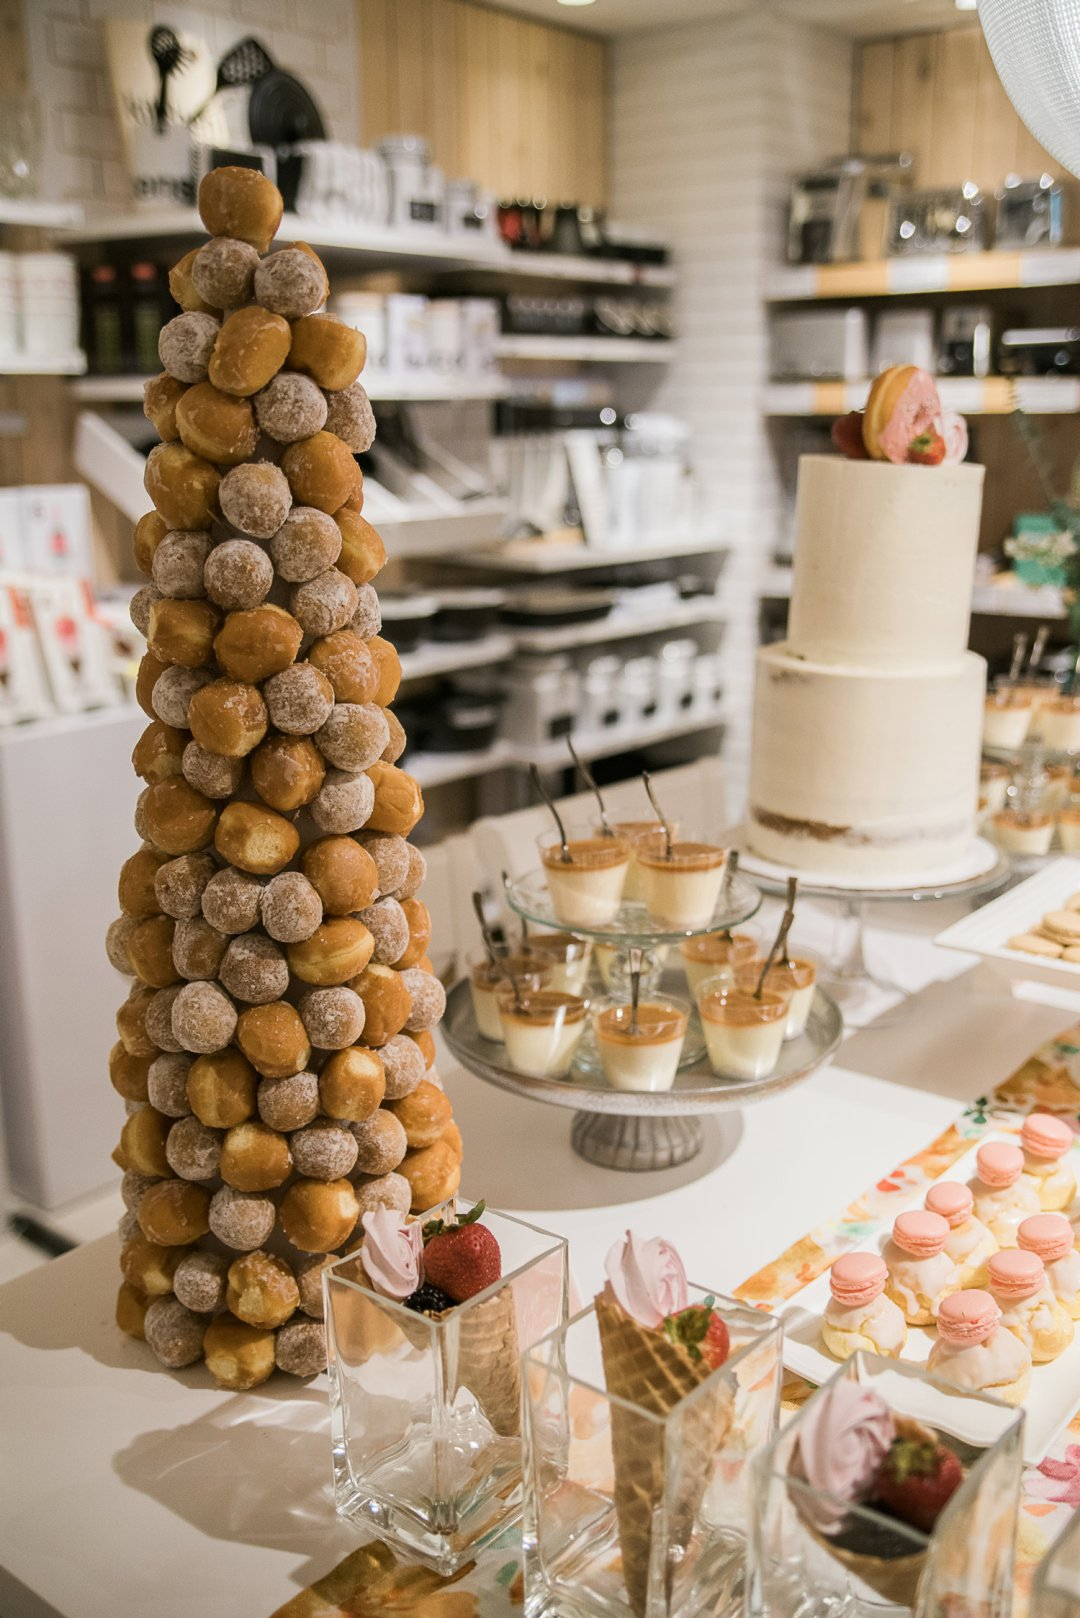 Doughnut hole tree display at Private Registry Event